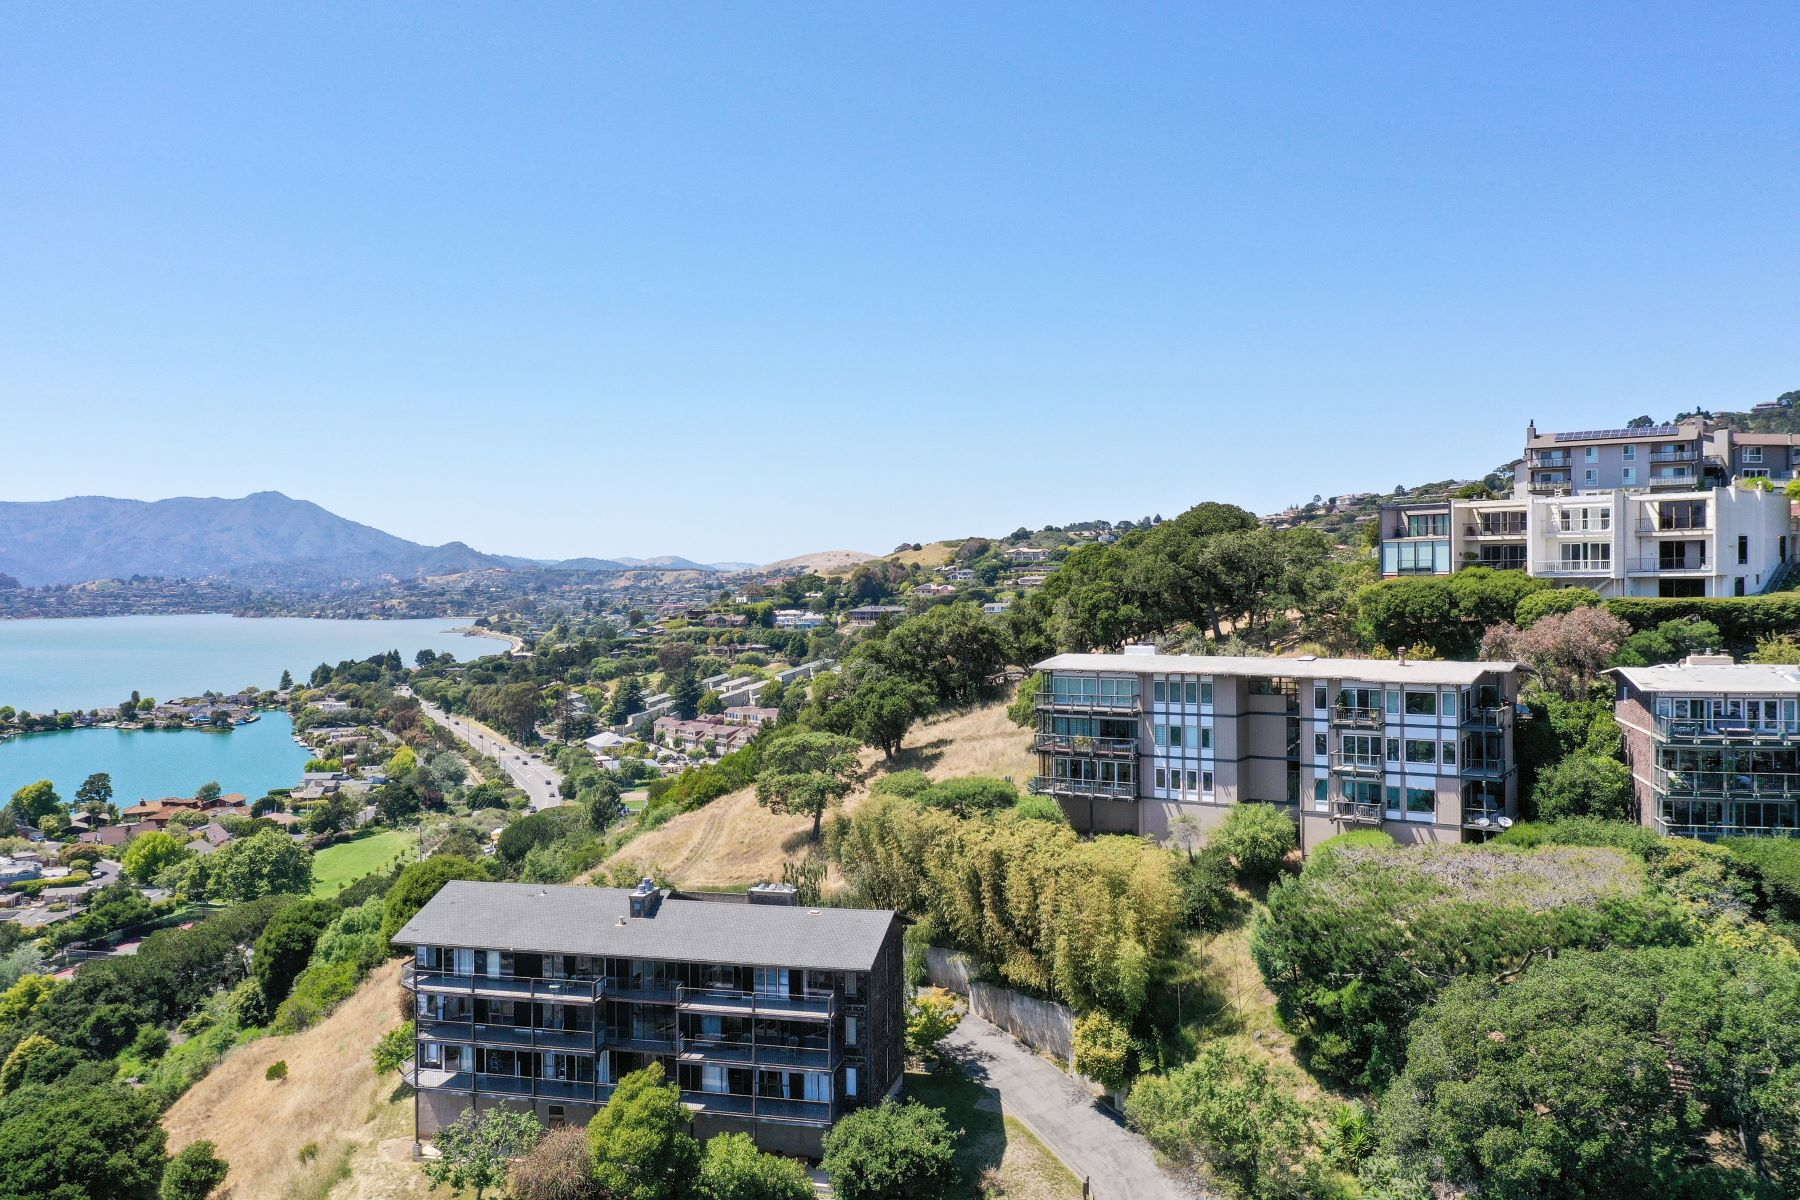 Property for Sale at Stunning Panoramic View Tiburon Condominium! 45 Corinthian Ct #22 Tiburon, California 94920 United States